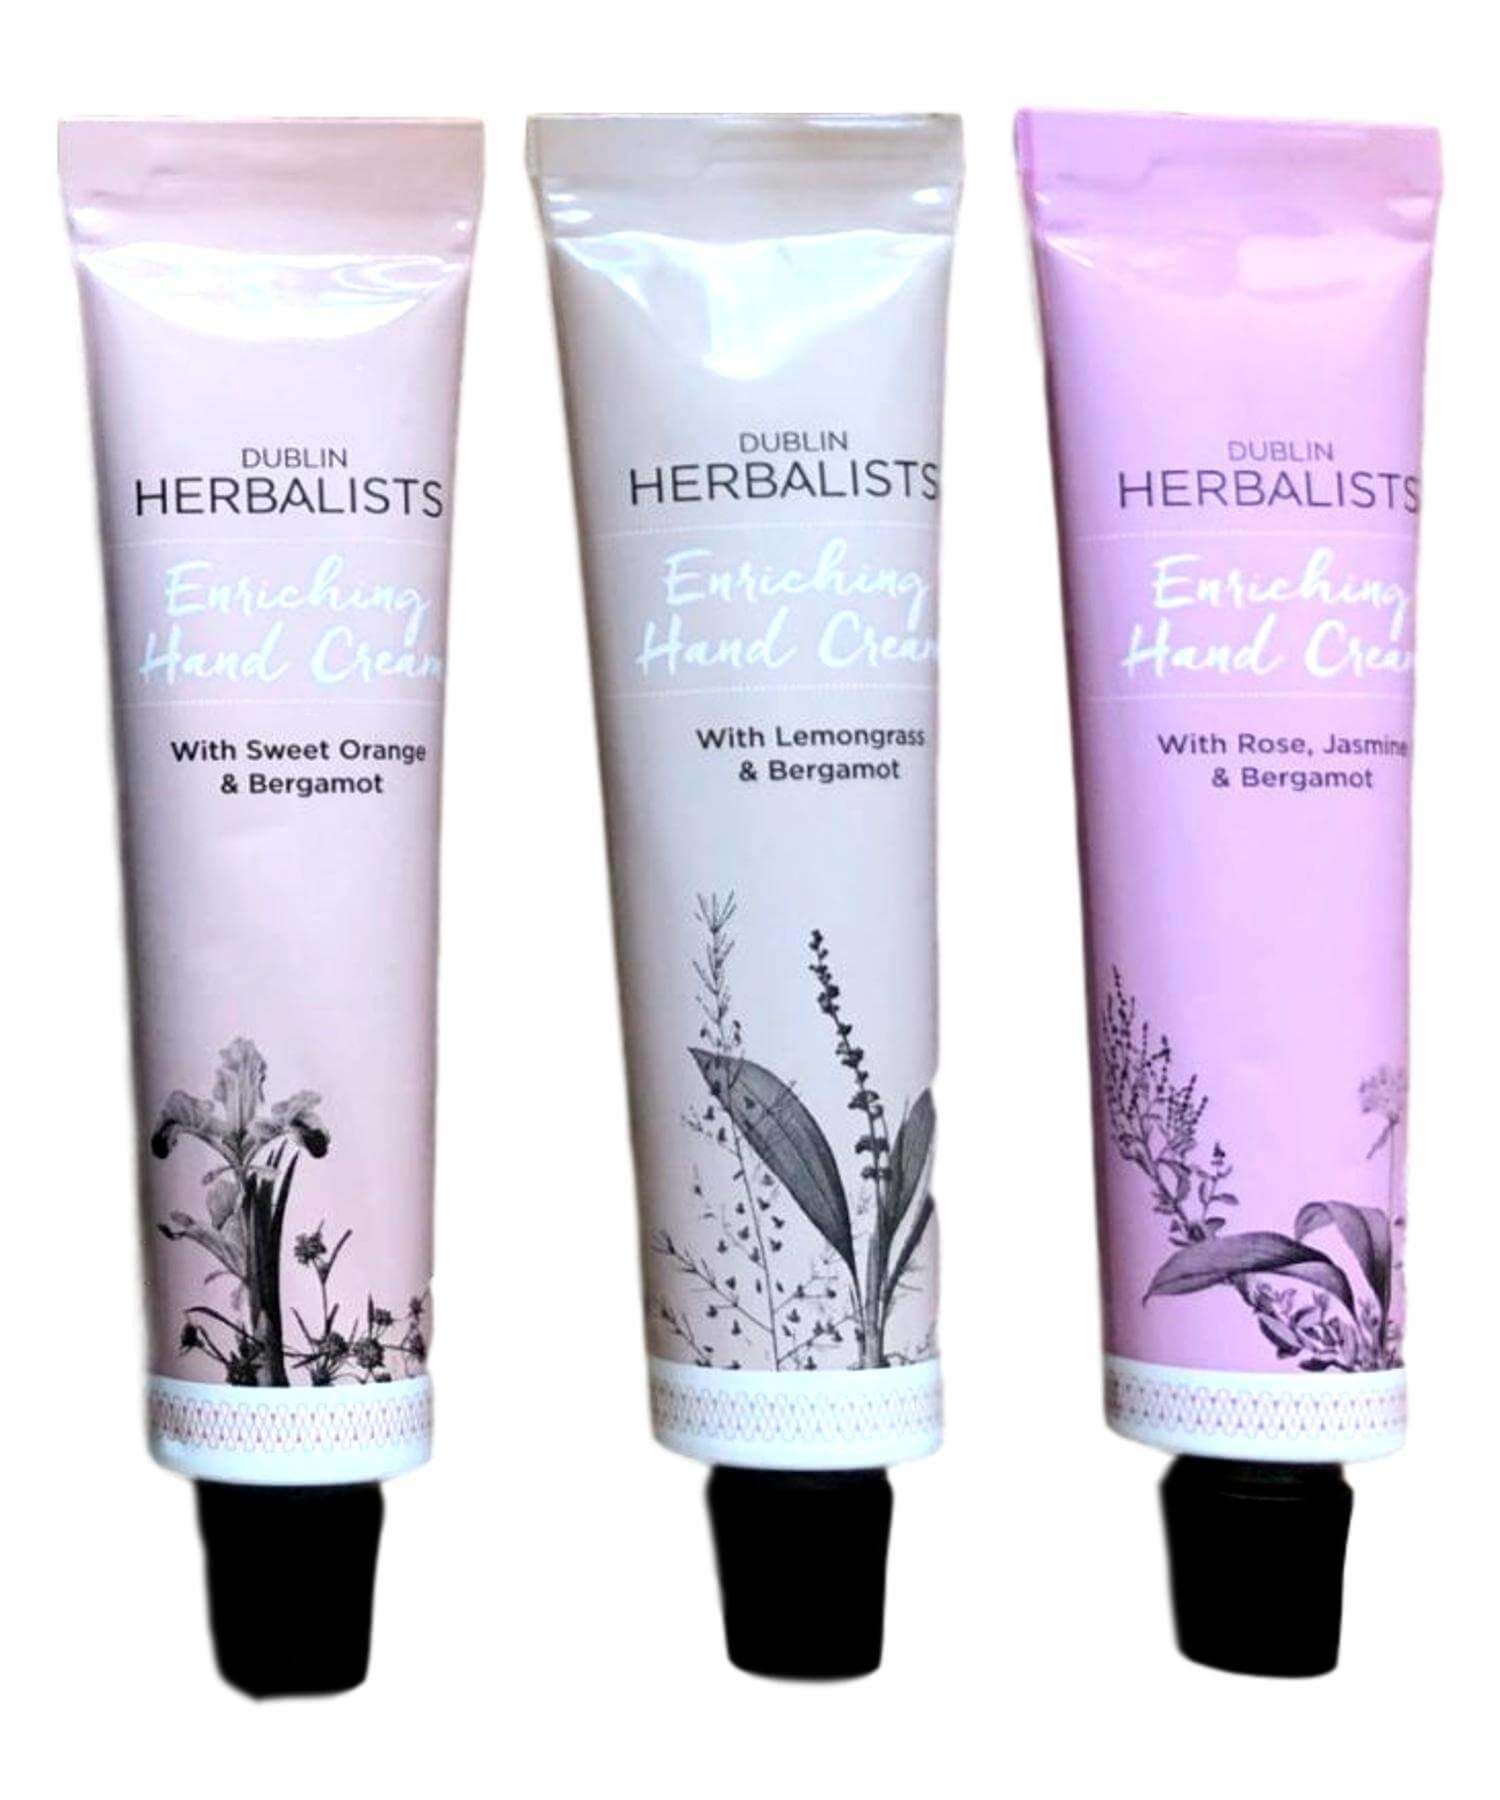 Enriching Hand Cream - Gift Set - [Dublin Herbalists] - Skincare & Beauty - Irish Gifts